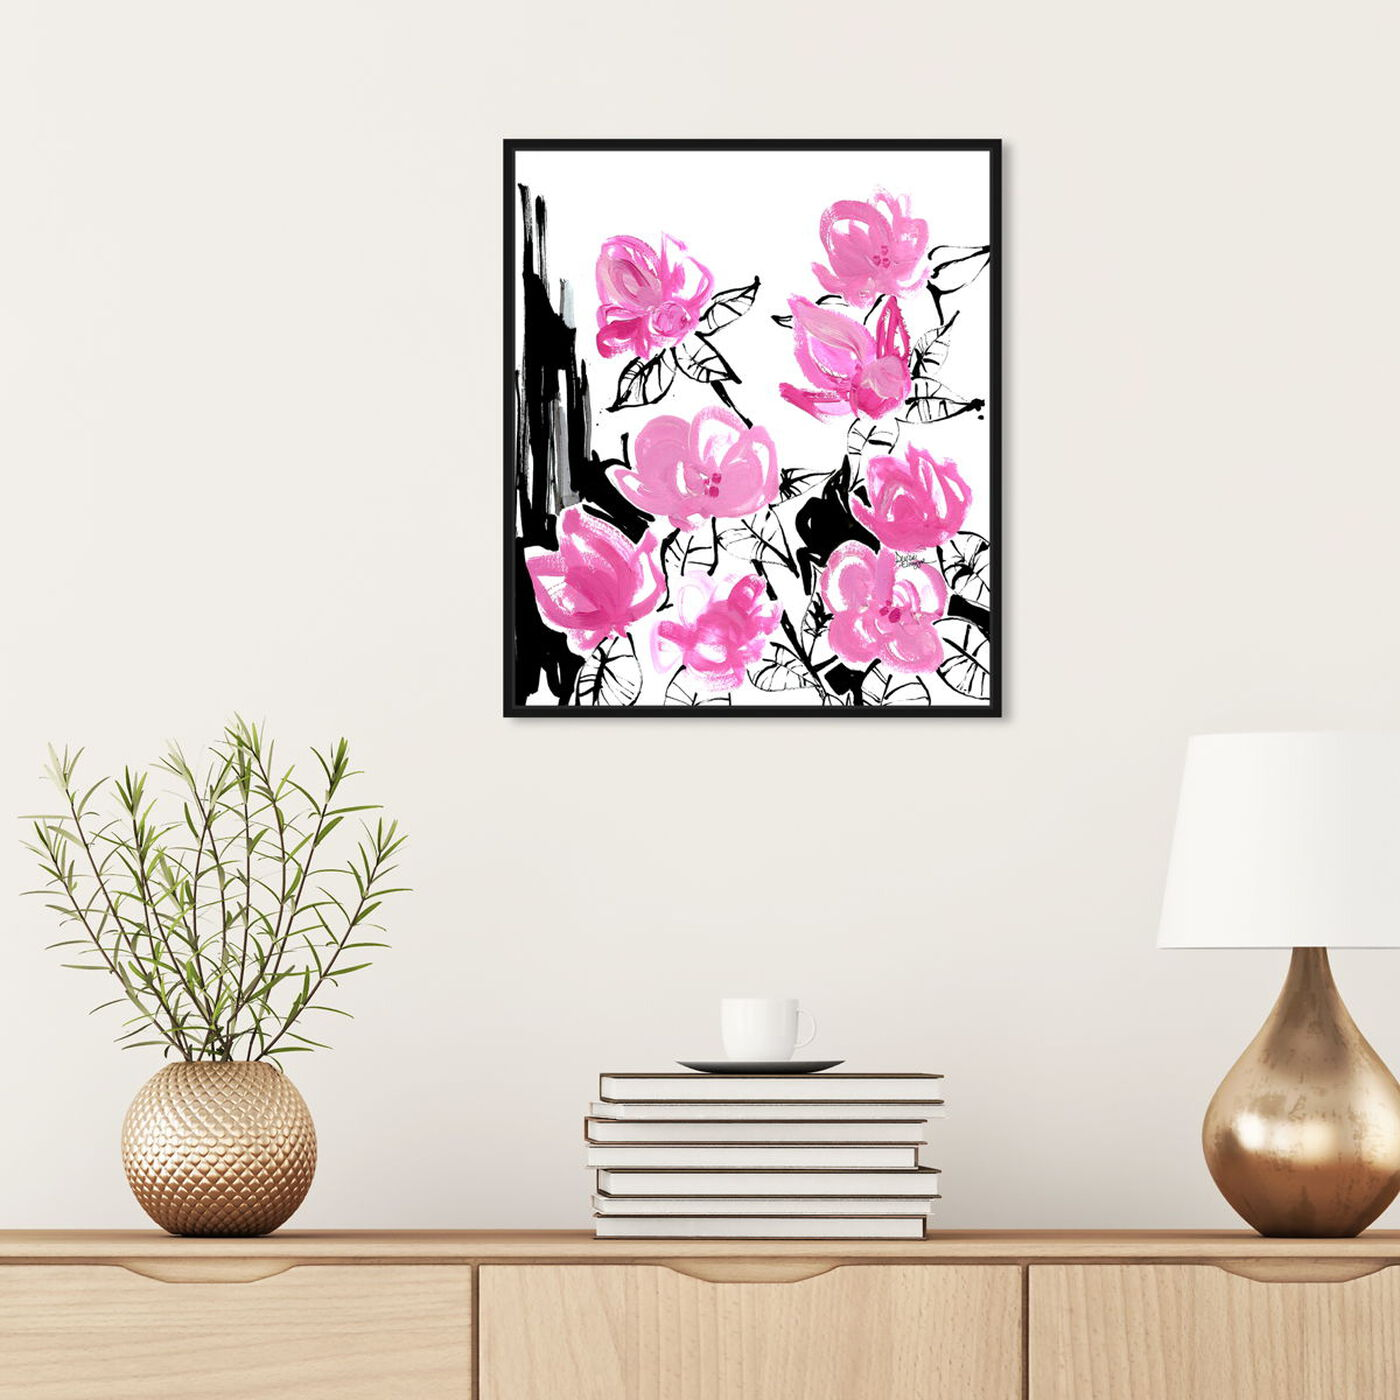 Hanging view of Denise Elnajjar - The Blooms featuring floral and botanical and florals art.